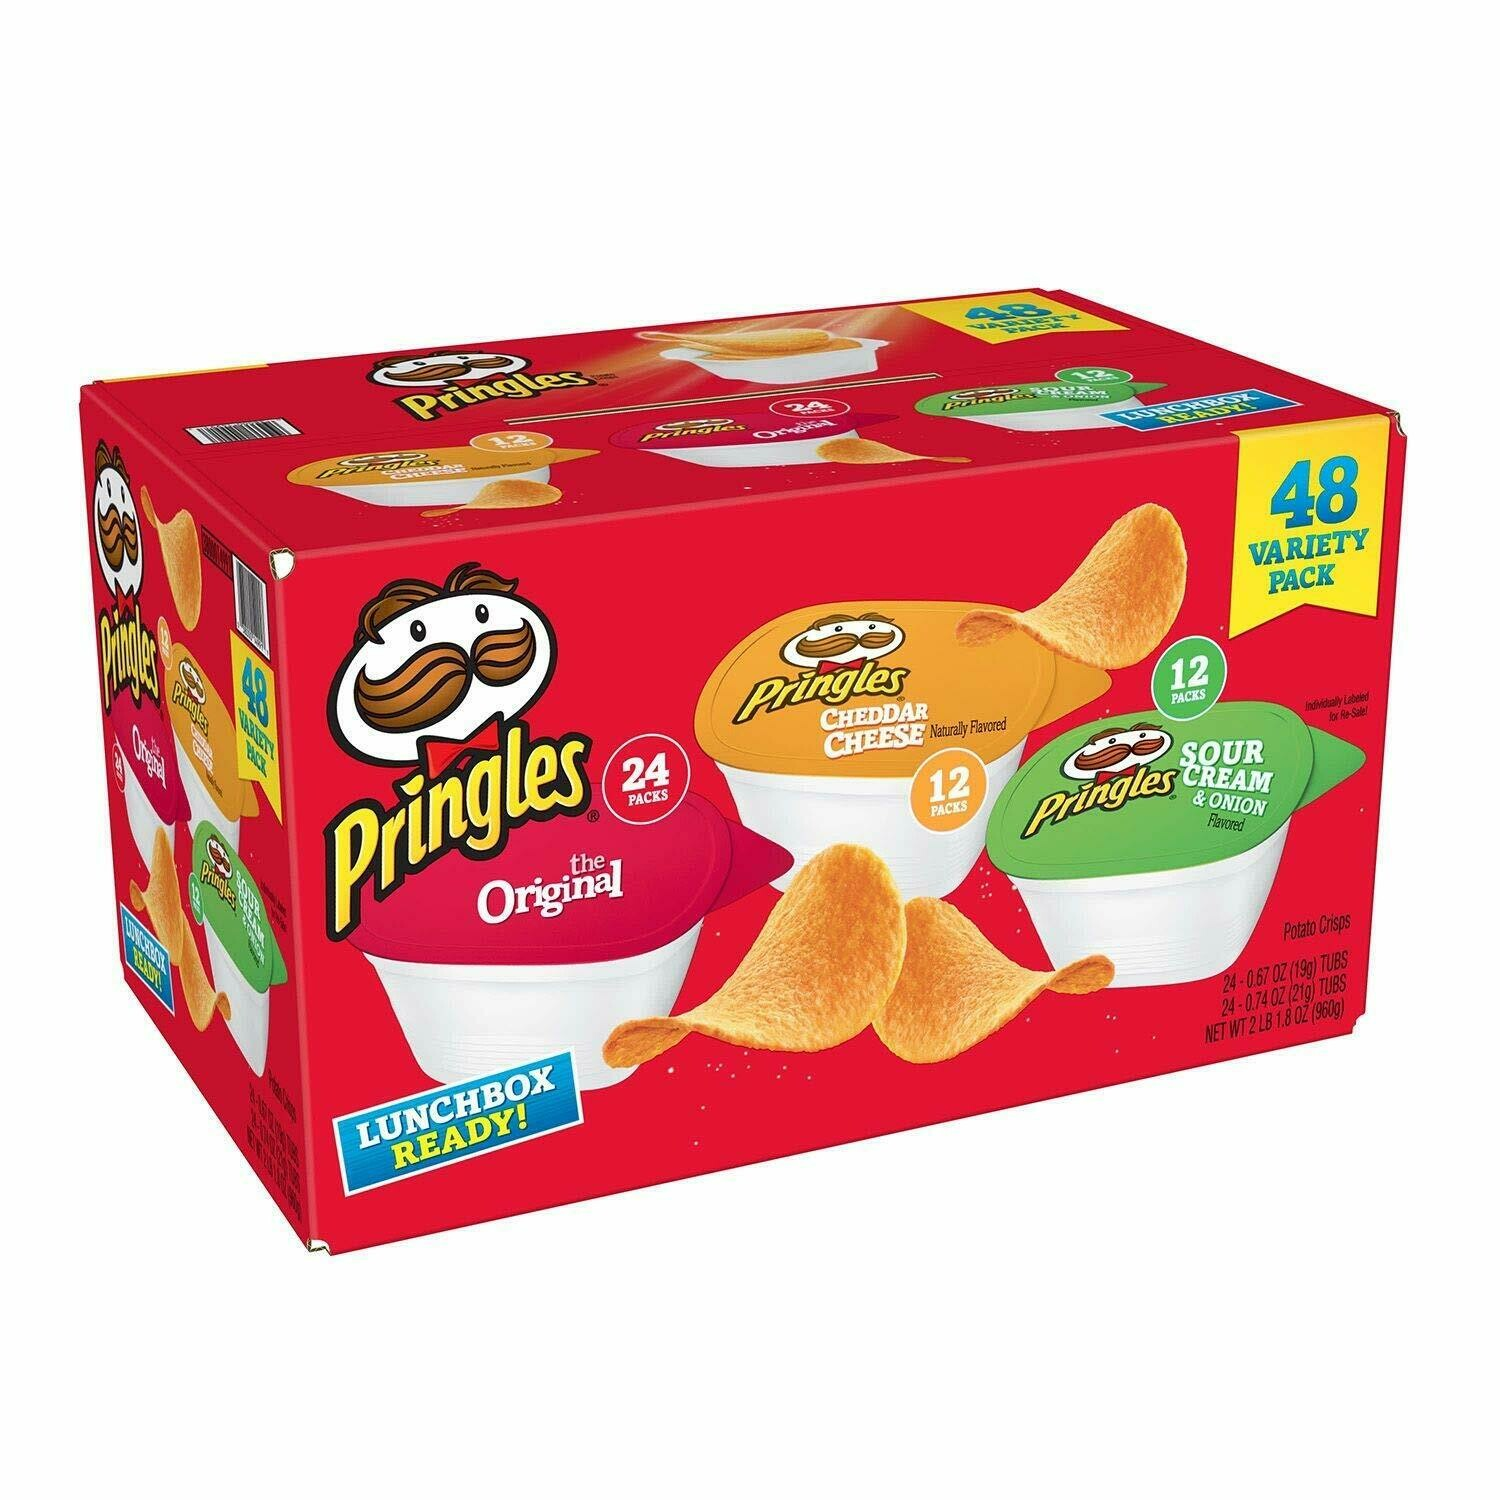 * Pringles Variety Chip Snack Pack 48 Count